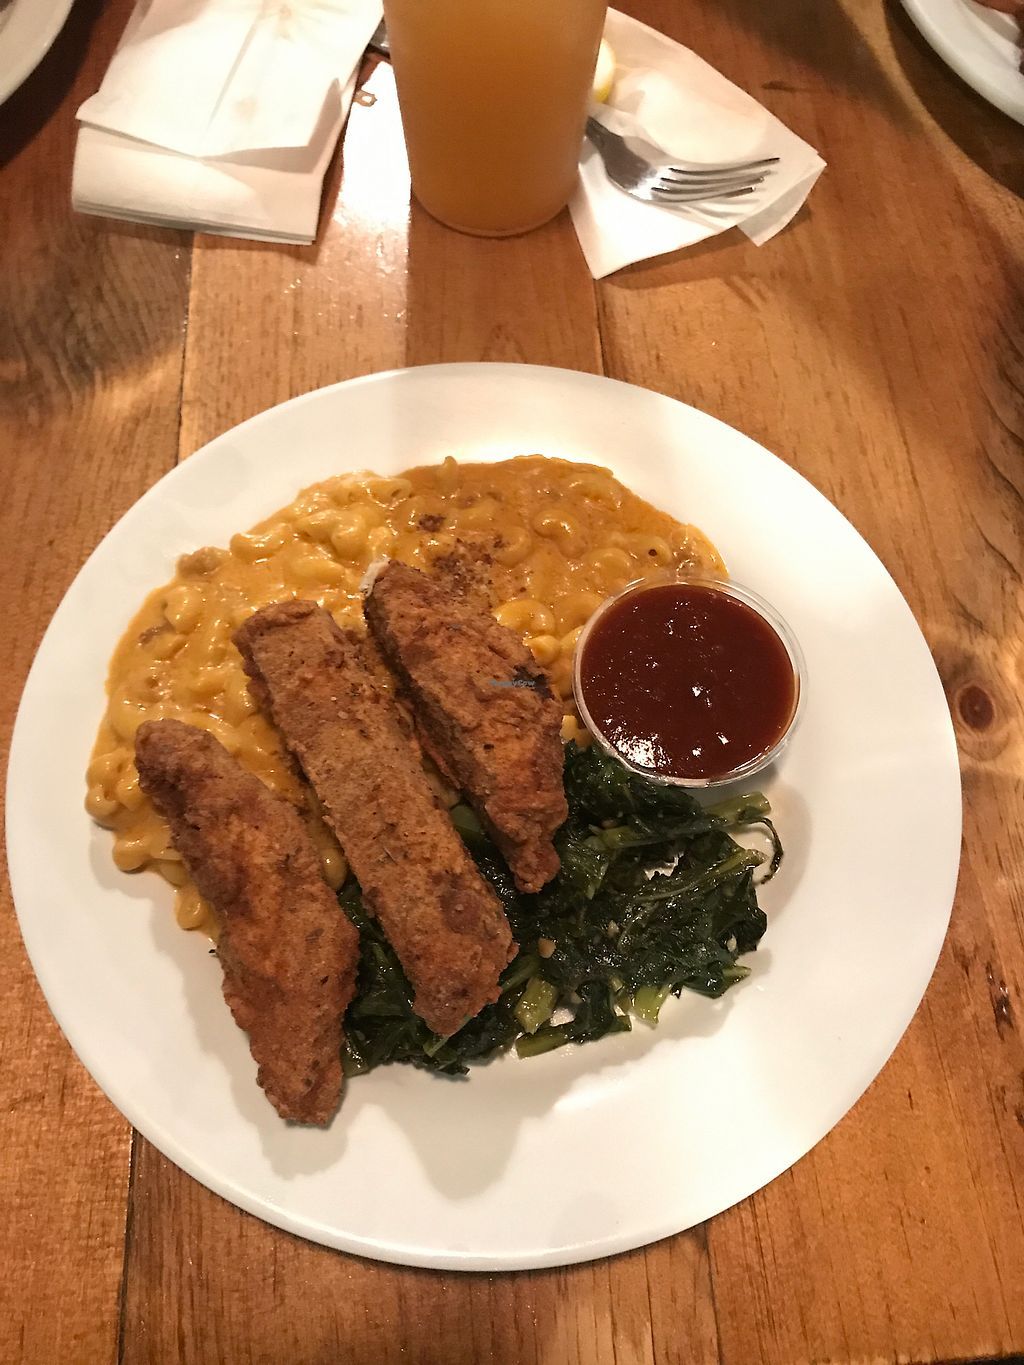 """Photo of The Hogtown Vegan  by <a href=""""/members/profile/De_vegyn"""">De_vegyn</a> <br/>southern combo - unchicken strips, mac and cheese, collars greens <br/> July 5, 2017  - <a href='/contact/abuse/image/27318/276813'>Report</a>"""